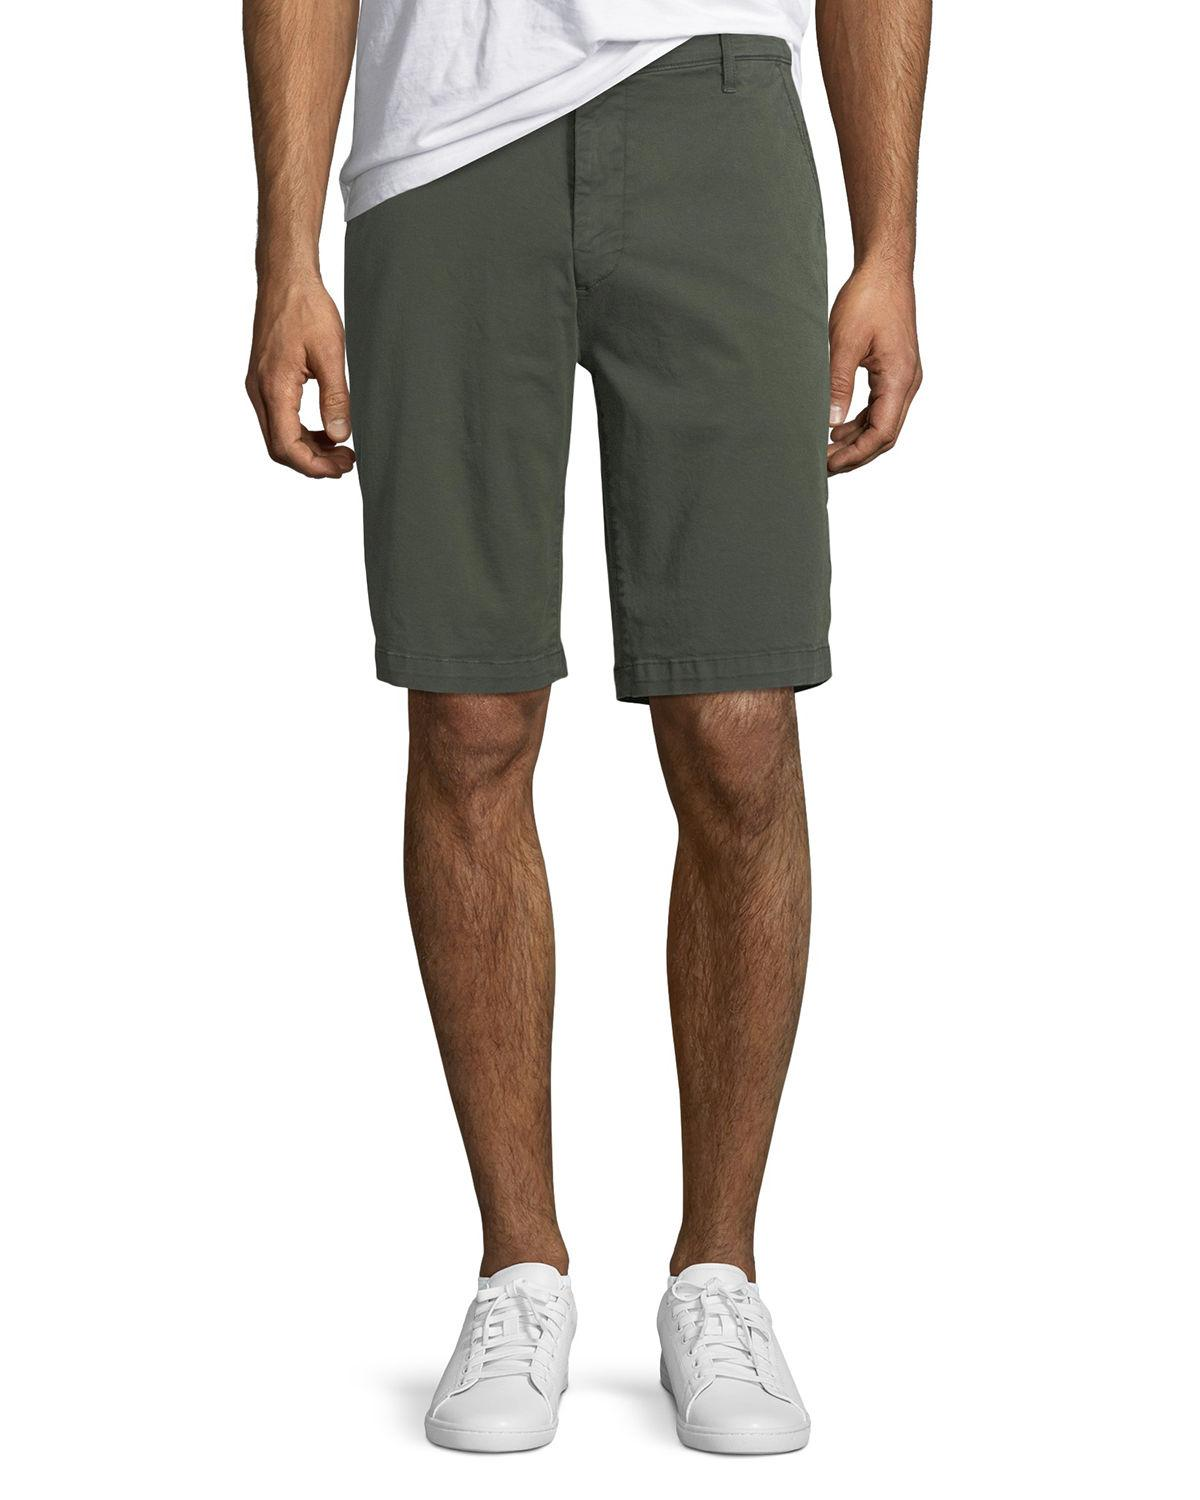 7 For All Mankind Men's Stretch Chino Shorts In Olive